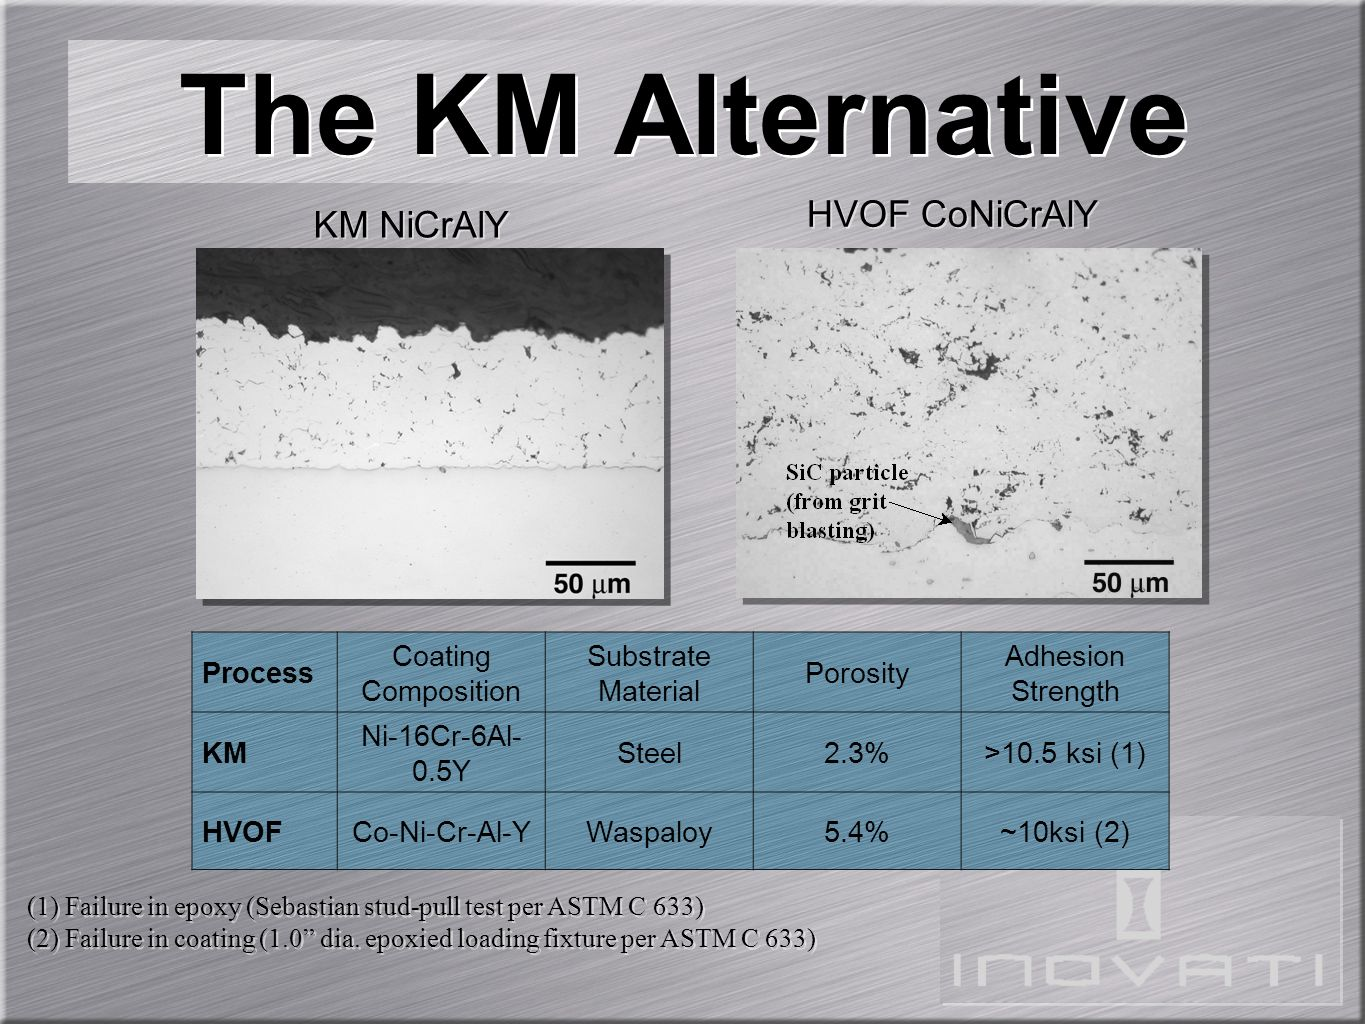 The KM Alternative KM NiCrAlY HVOF CoNiCrAlY Process Coating Composition Substrate Material Porosity Adhesion Strength KM Ni-16Cr-6Al- 0.5Y Steel2.3%>